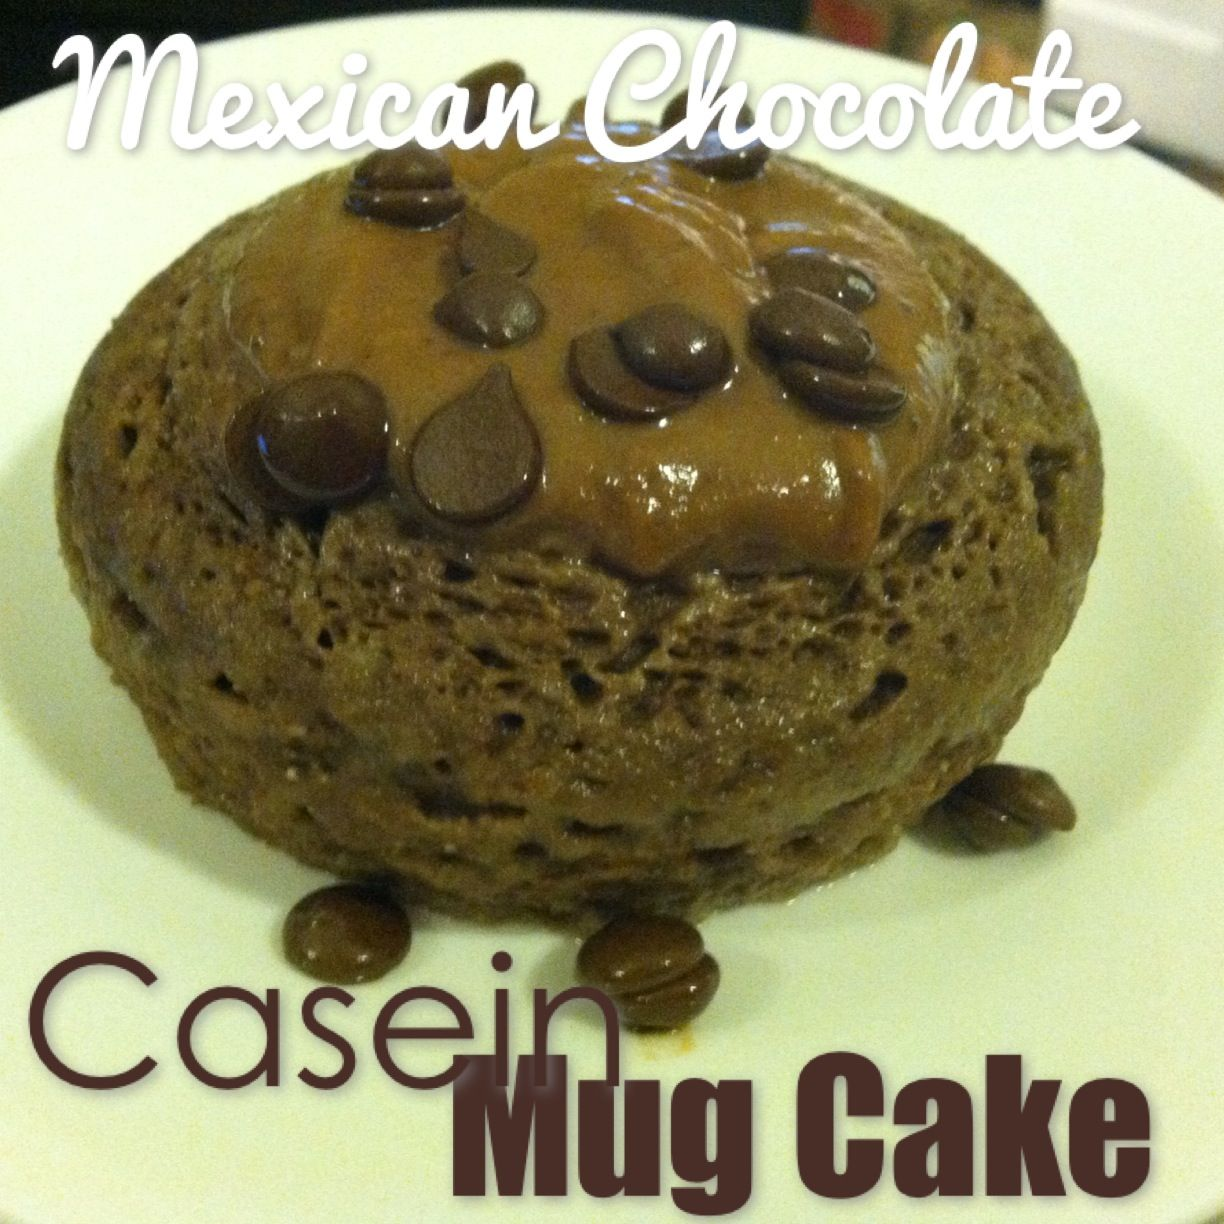 My new favorite casein mug cake! Thanks to Brittany Eats Clean. Ingredients: 1 Scoop Casein Protein Powder (I used Dymatize Elite Cinnamon Bun flavor)** 1 Tblsp Coconut Flour 1 Tblsp Unsweetened Co...